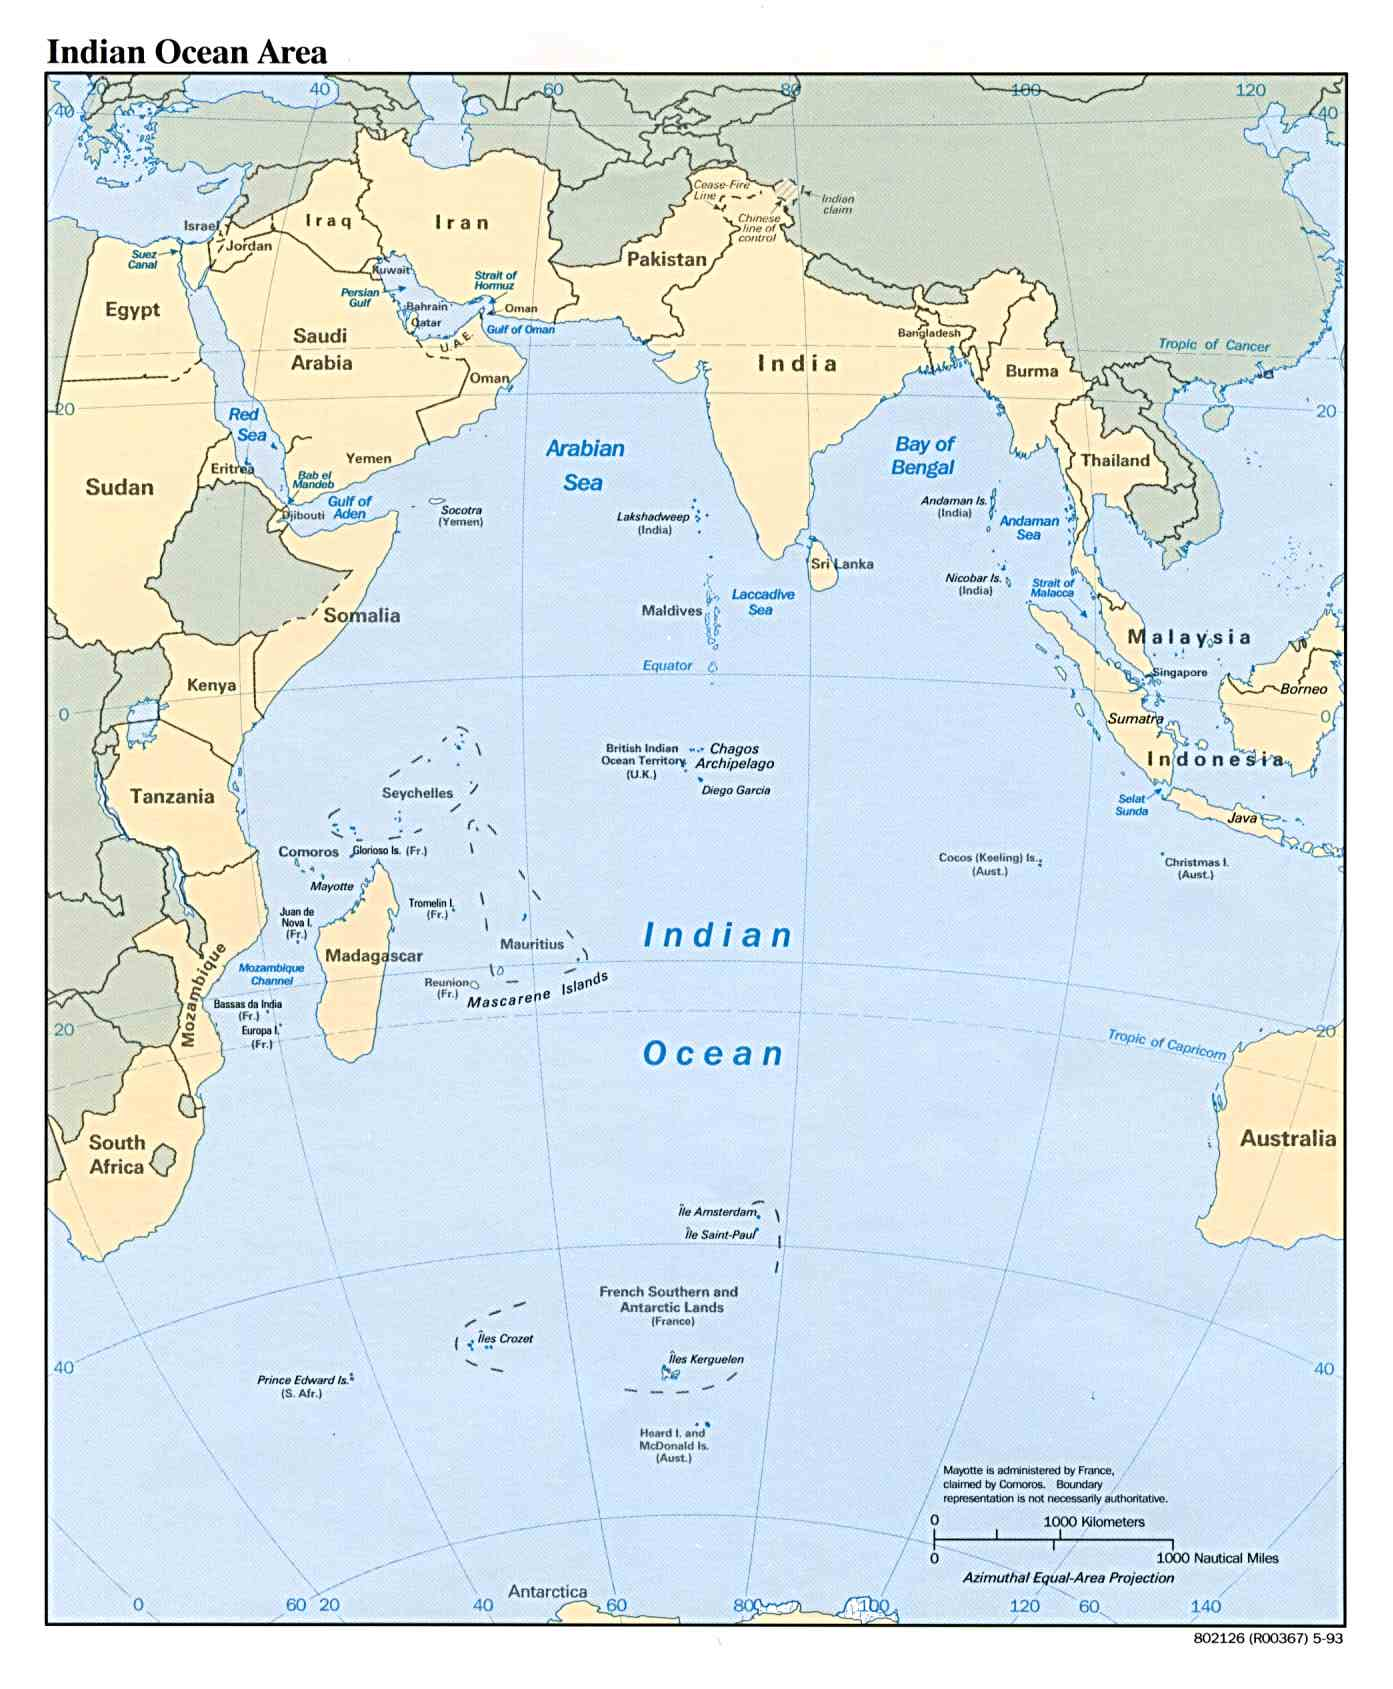 the indian ocean maritime boundary the control of the indian ocean area is very vital for